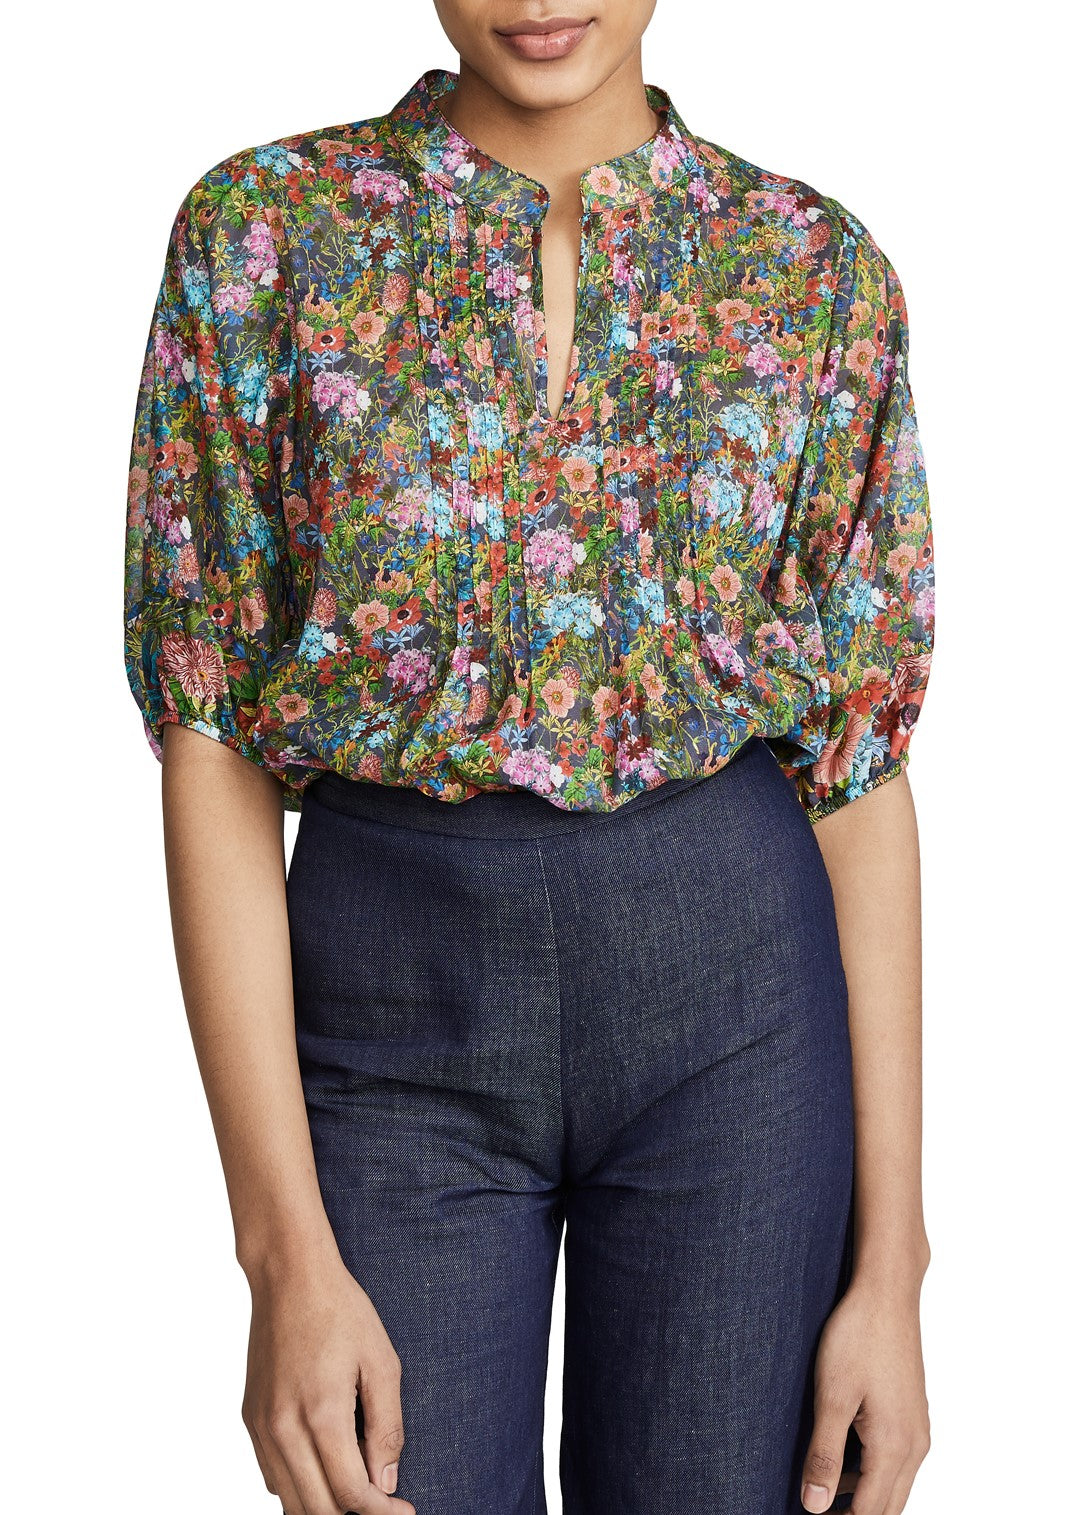 Warm Love Street Blouse in small floral